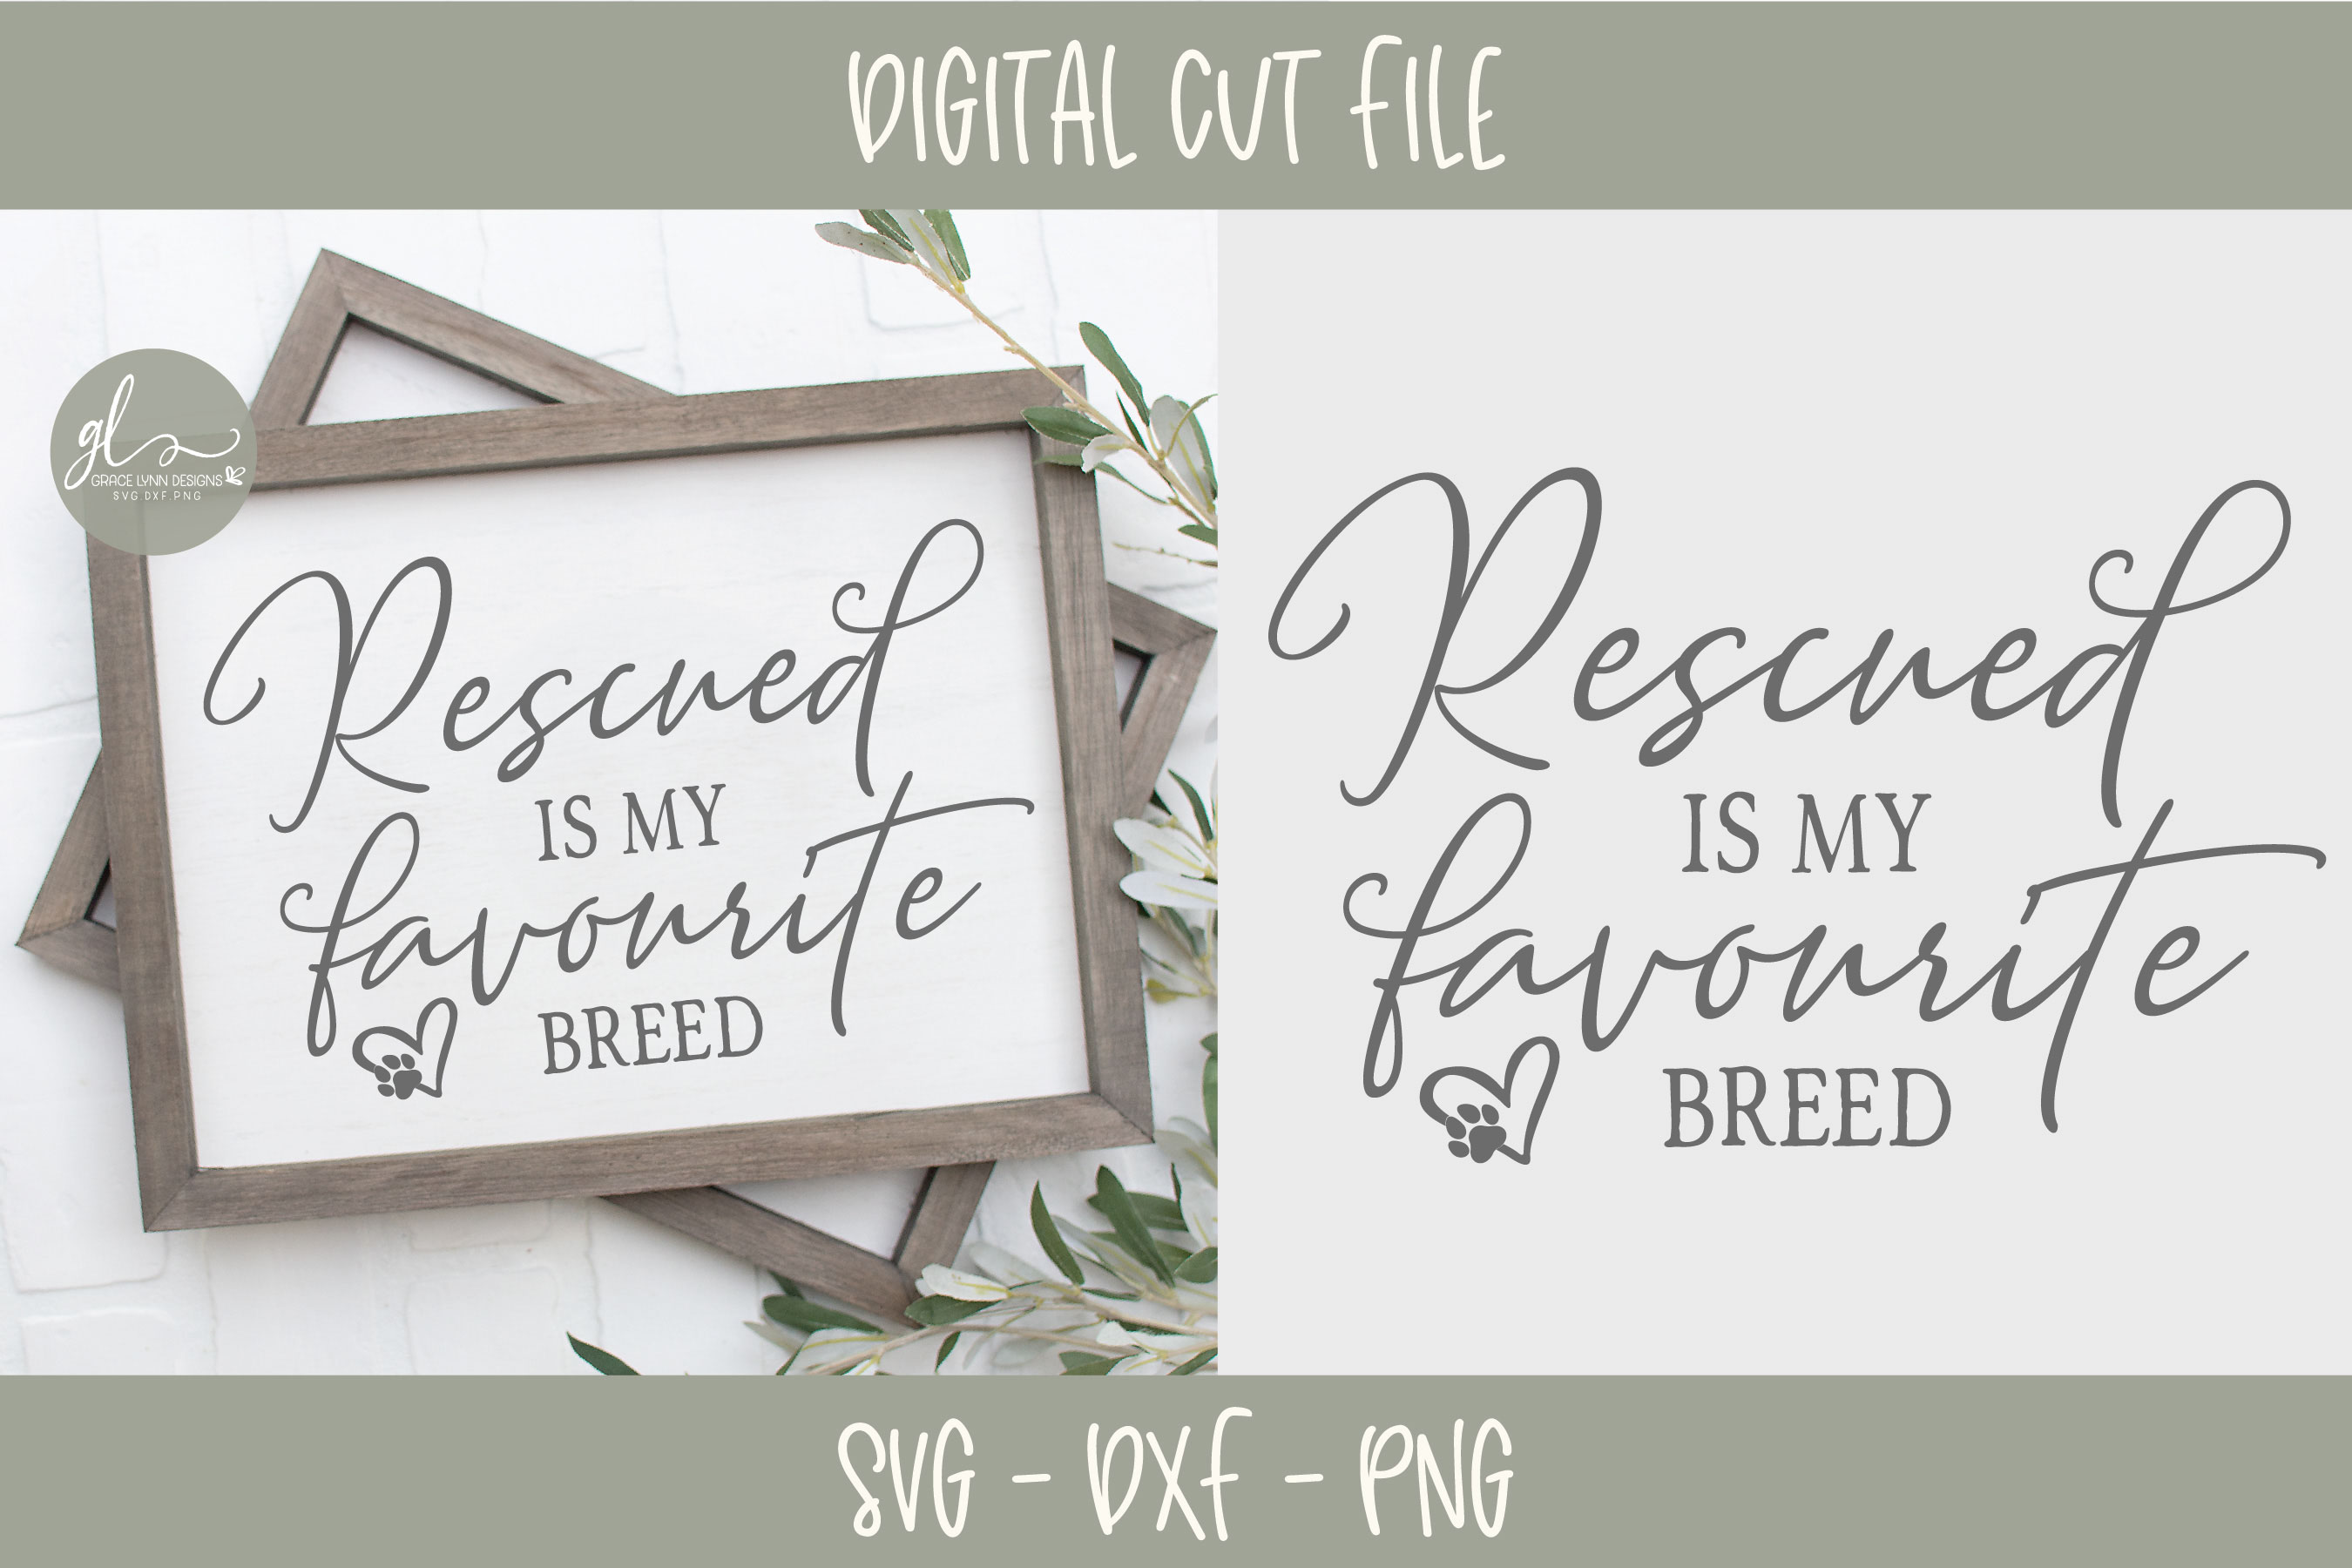 Dog Quotes Bundle Vol. 1 - 12 Designs - SVG Cut Files example image 13